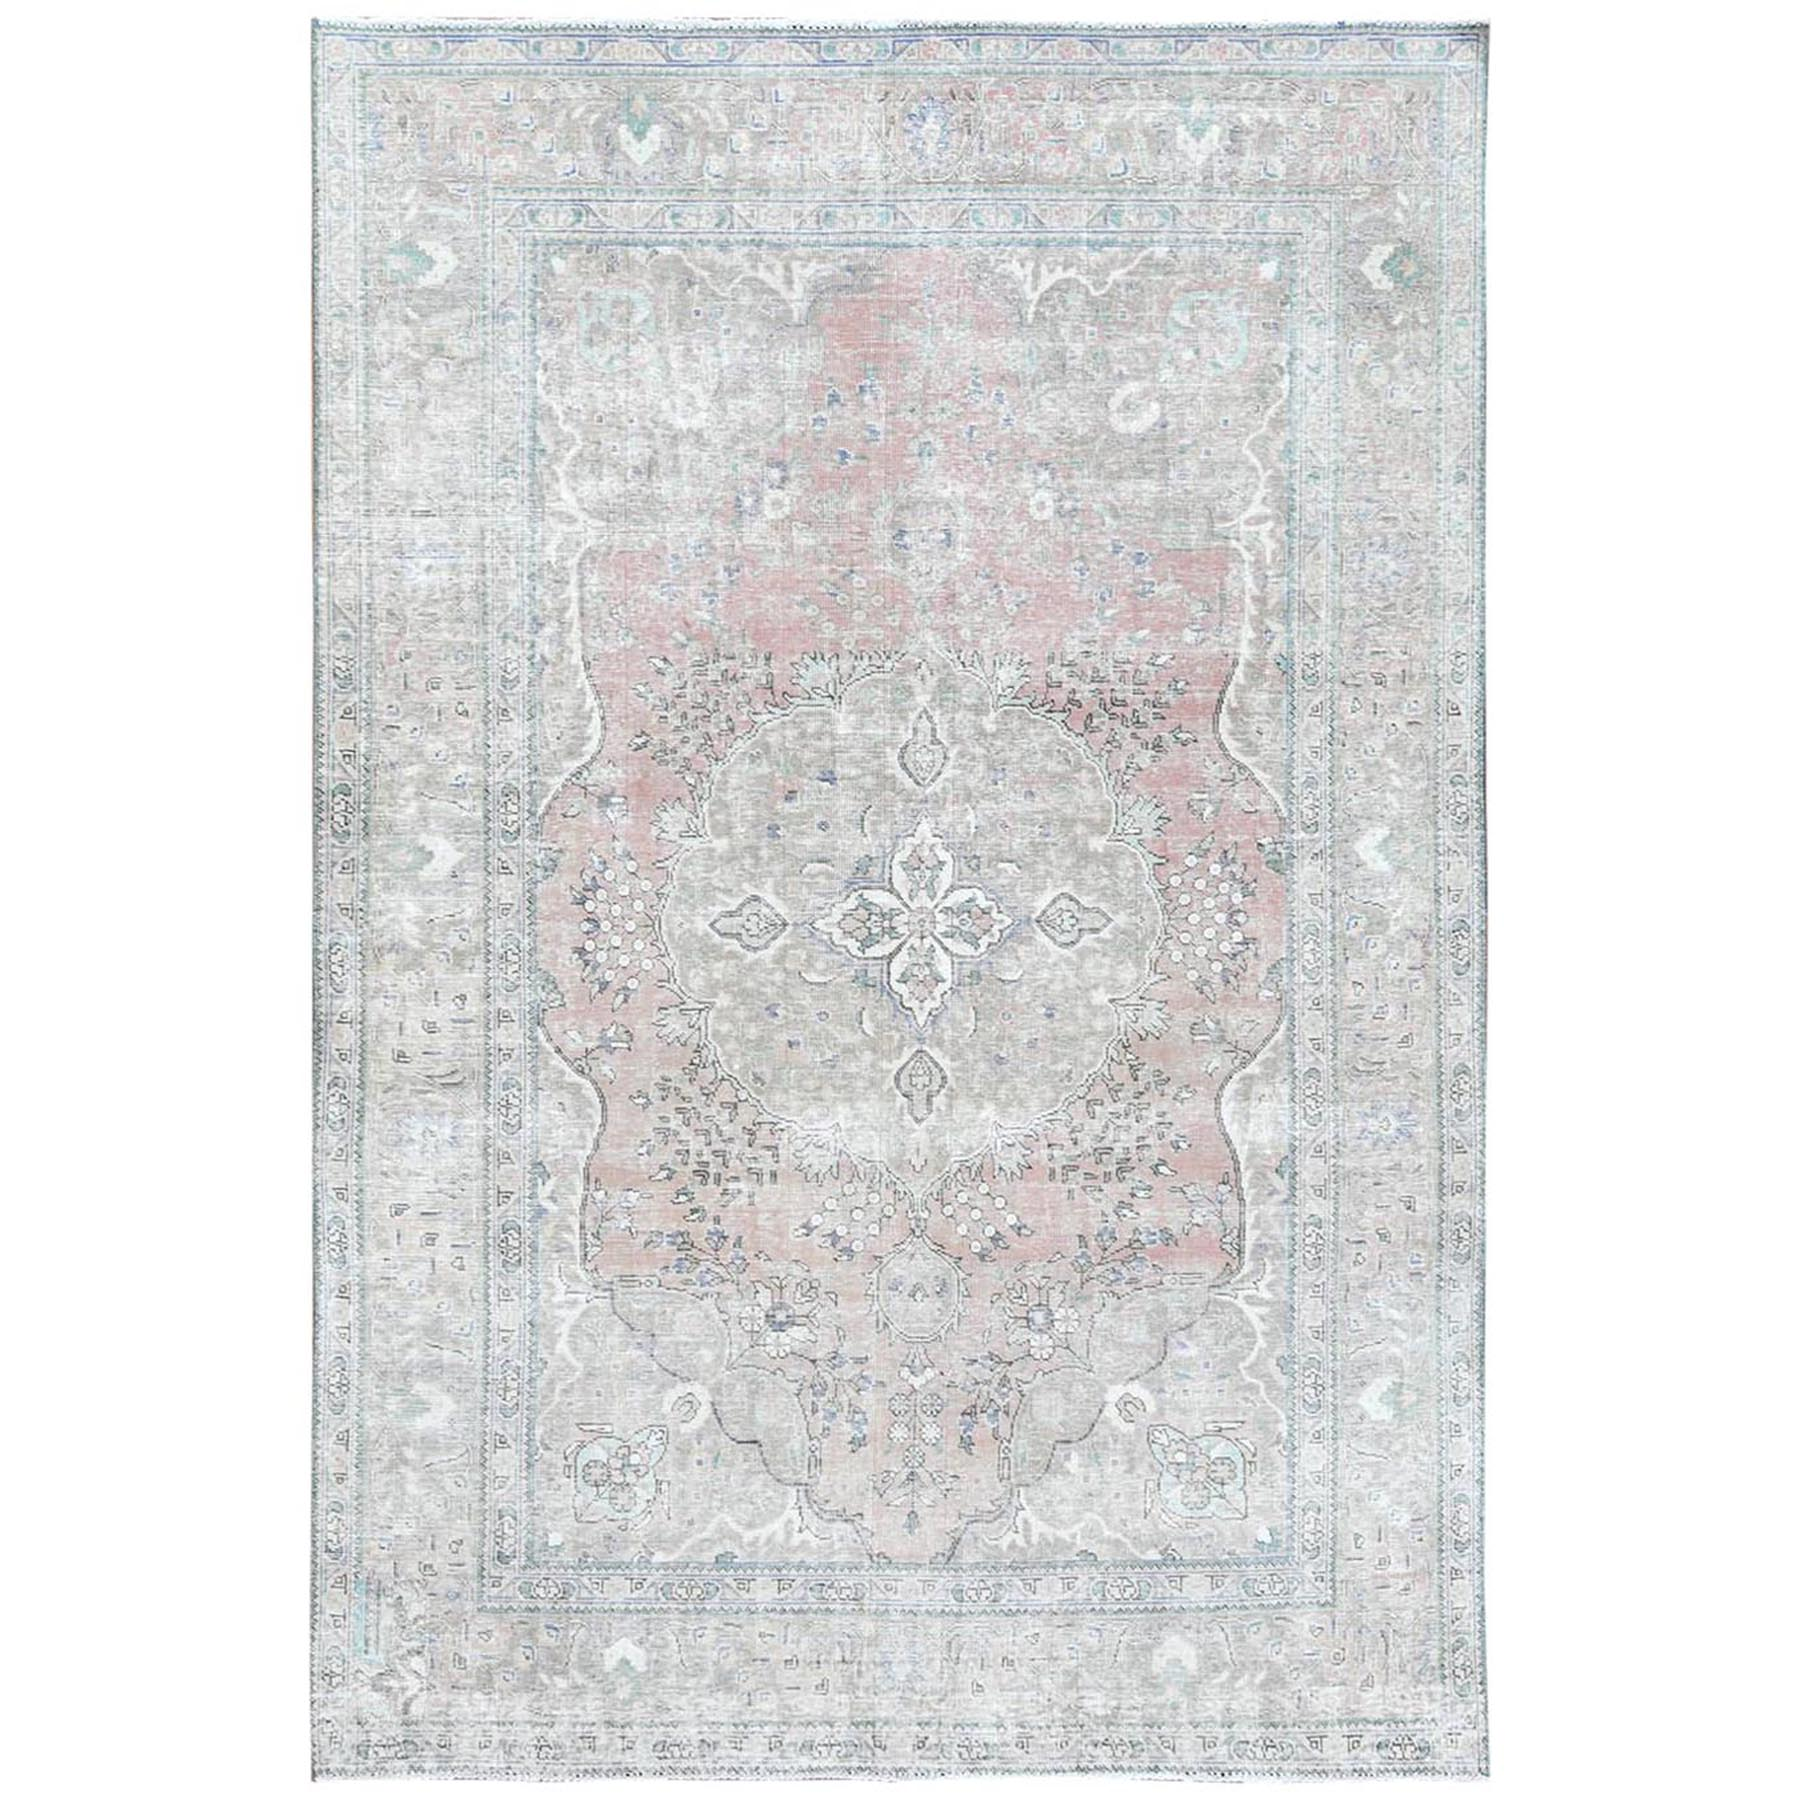 """6'2""""x9'7"""" Red Clean Natural Wool Shabby Chic Distressed Old Persian Tabriz Medallion Design Hand Knotted Oriental Rug"""